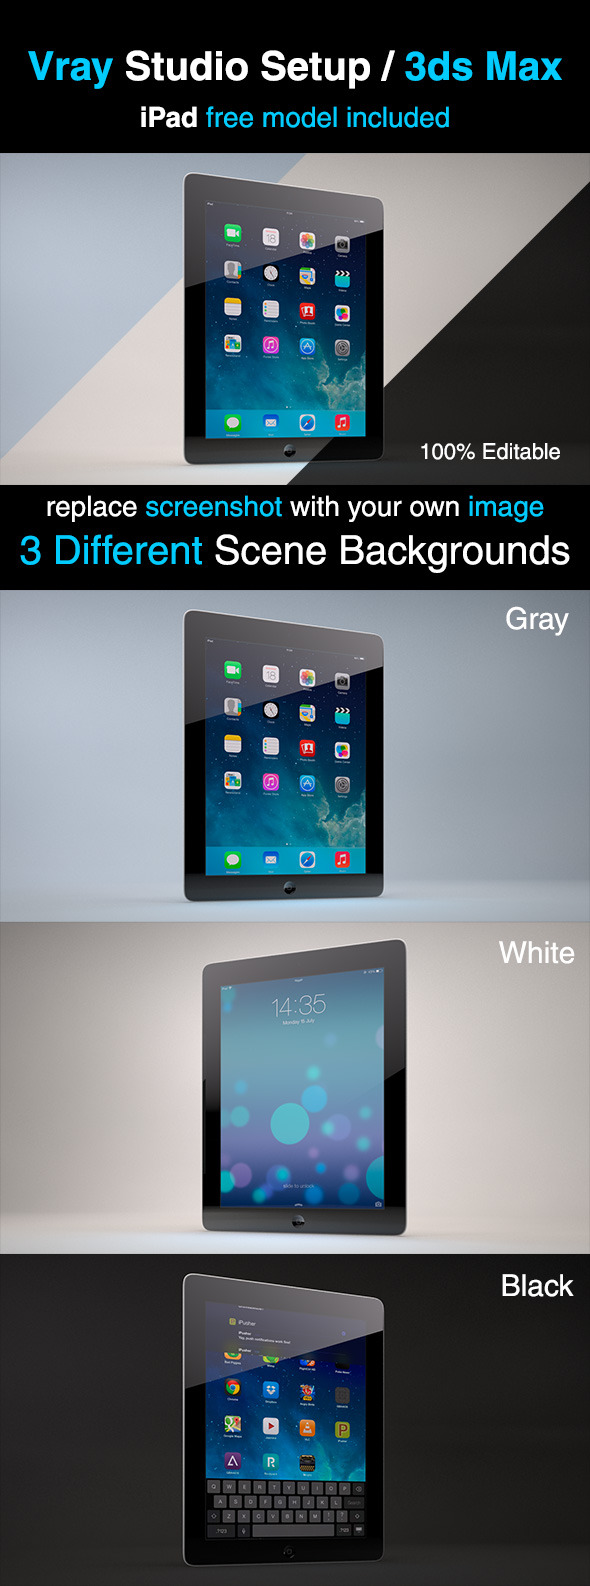 V-ray Studio Lighting Setup + iPad Model - 3DOcean Item for Sale